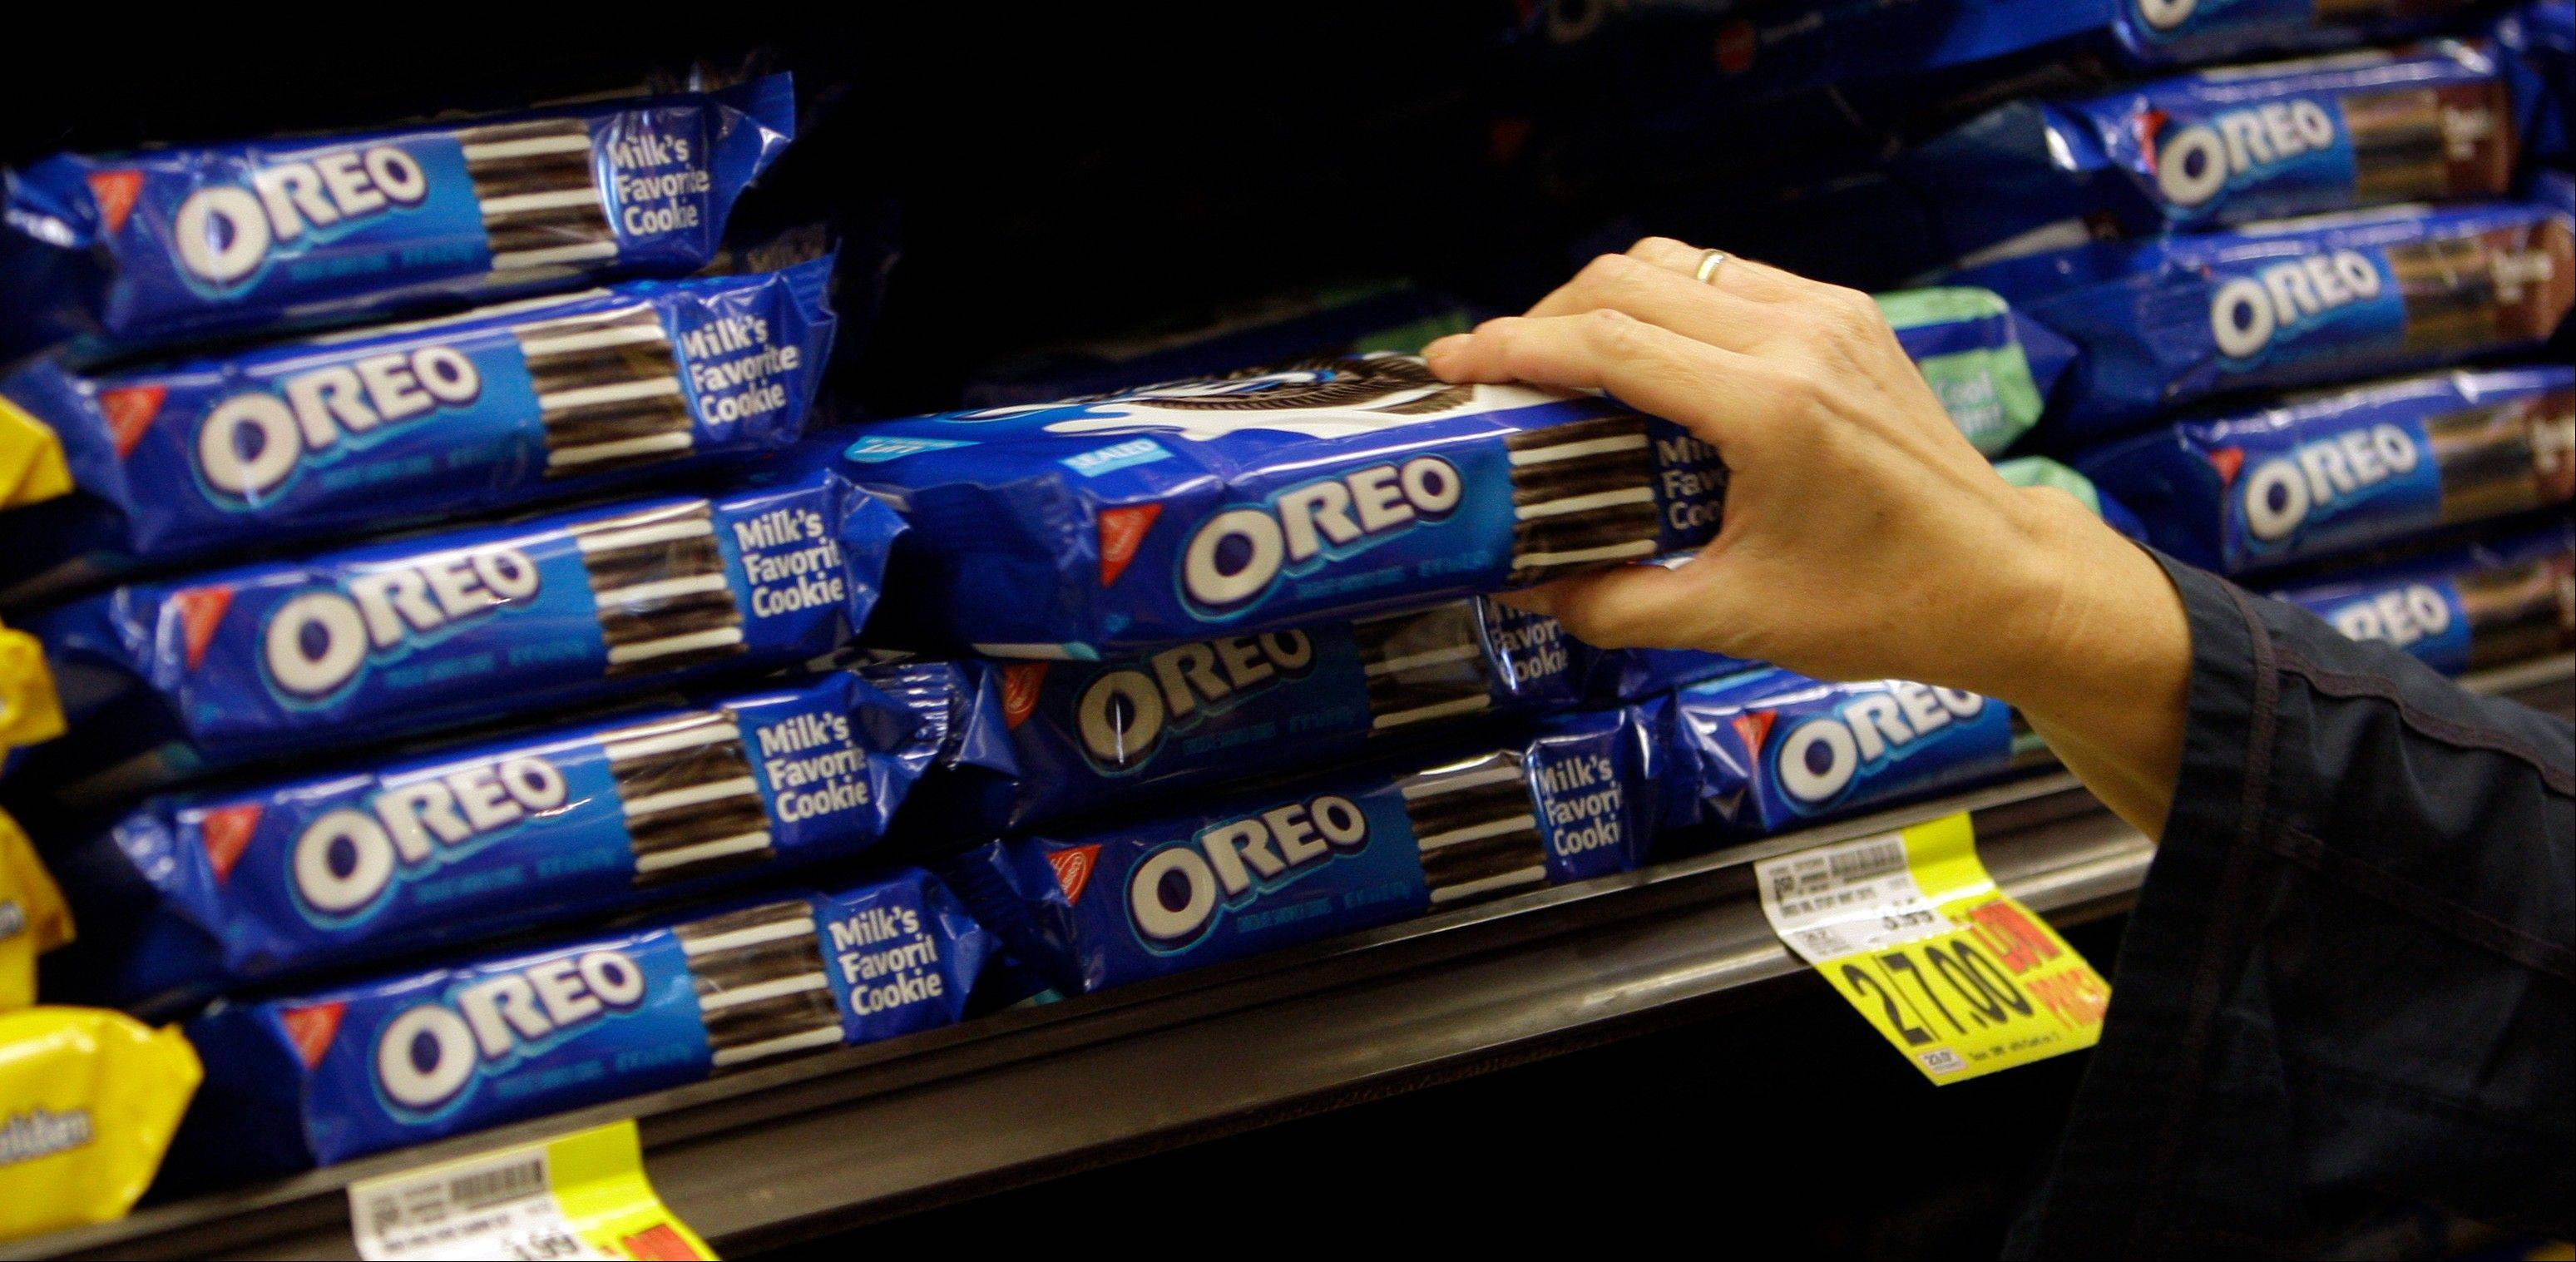 Deerfield-based Oreo cookie maker Mondelez International Inc. reported a better-than-expected profit Wednesday and sharply raised its stock buyback authorization, a move intended to placate investors.